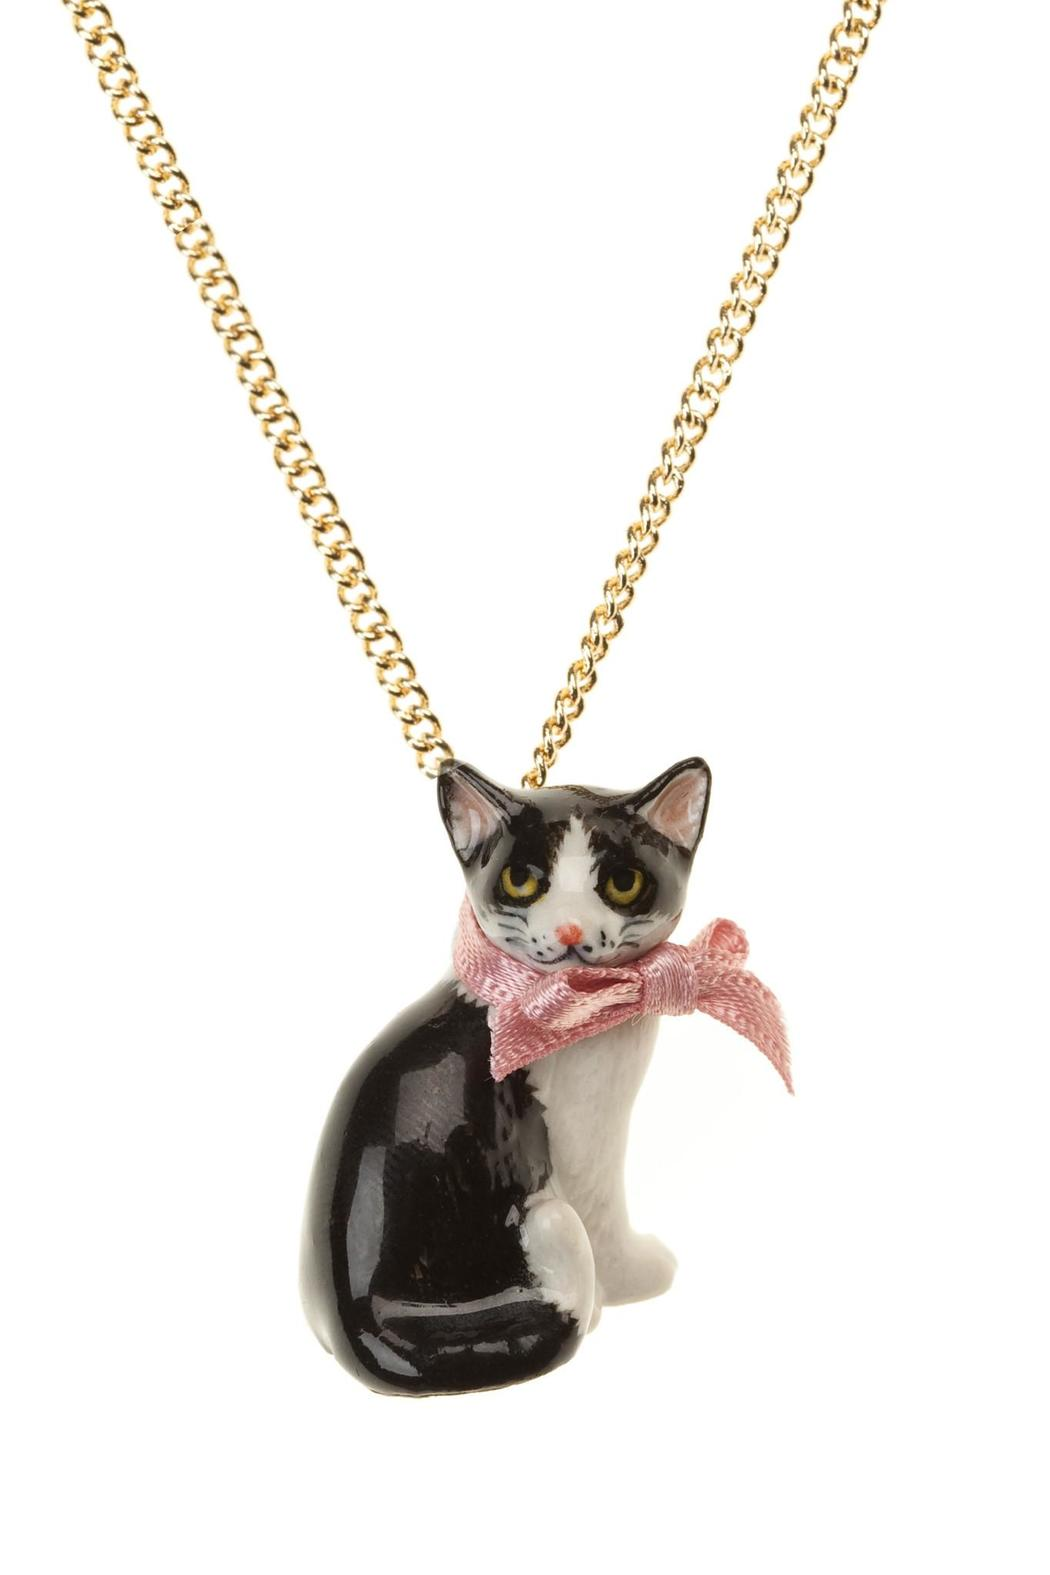 the tiny climbing cute chain necklaces with products shop cats pendant catnecklace meow necklace cat